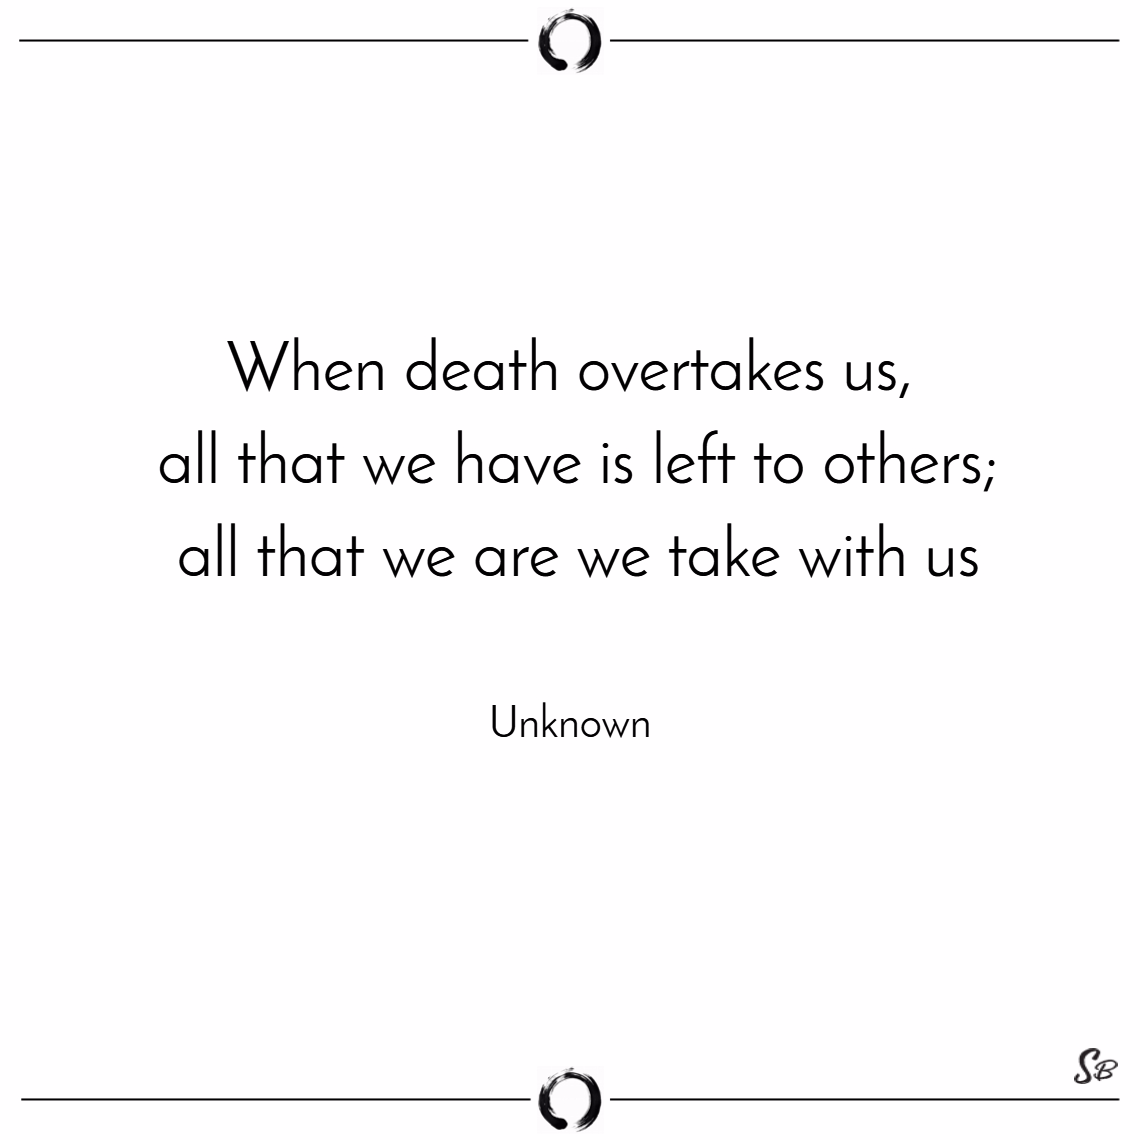 When death overtakes us; all that we have is left to others; all that we are we take with us. – unknown